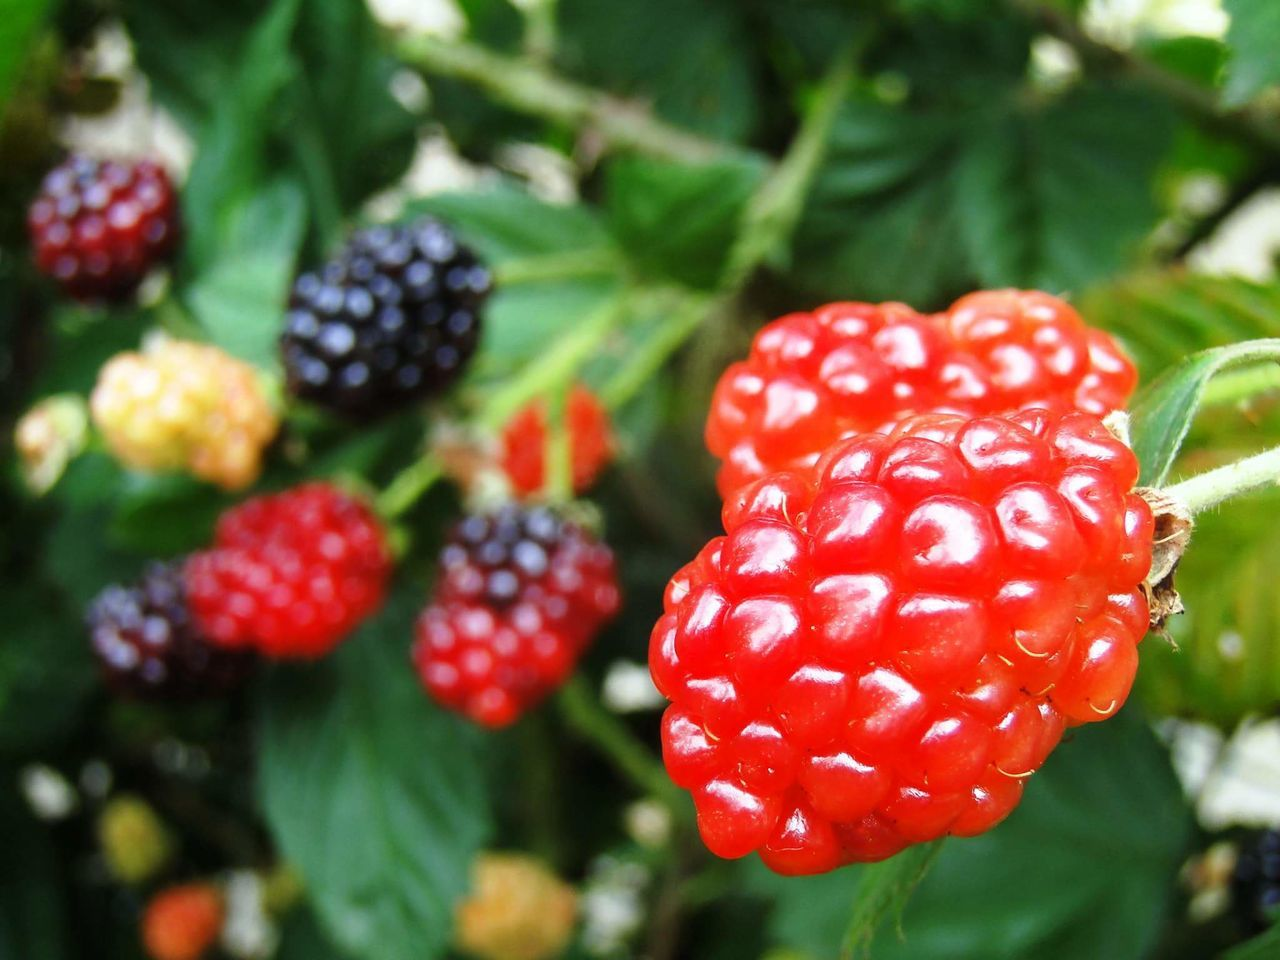 Red Fruit Outdoors Close-up Freshness Focus On Foreground Nature Growth Organic Organic Fruit Blackberry Blackberry - Fruit Blackberries Amoras Amora Pomar Organico Blackberry Fruit Frutas Frescas Fresh Fruits My Garden Fruits Of The Garden Fresh Blackberries Fruits Fresh Produce